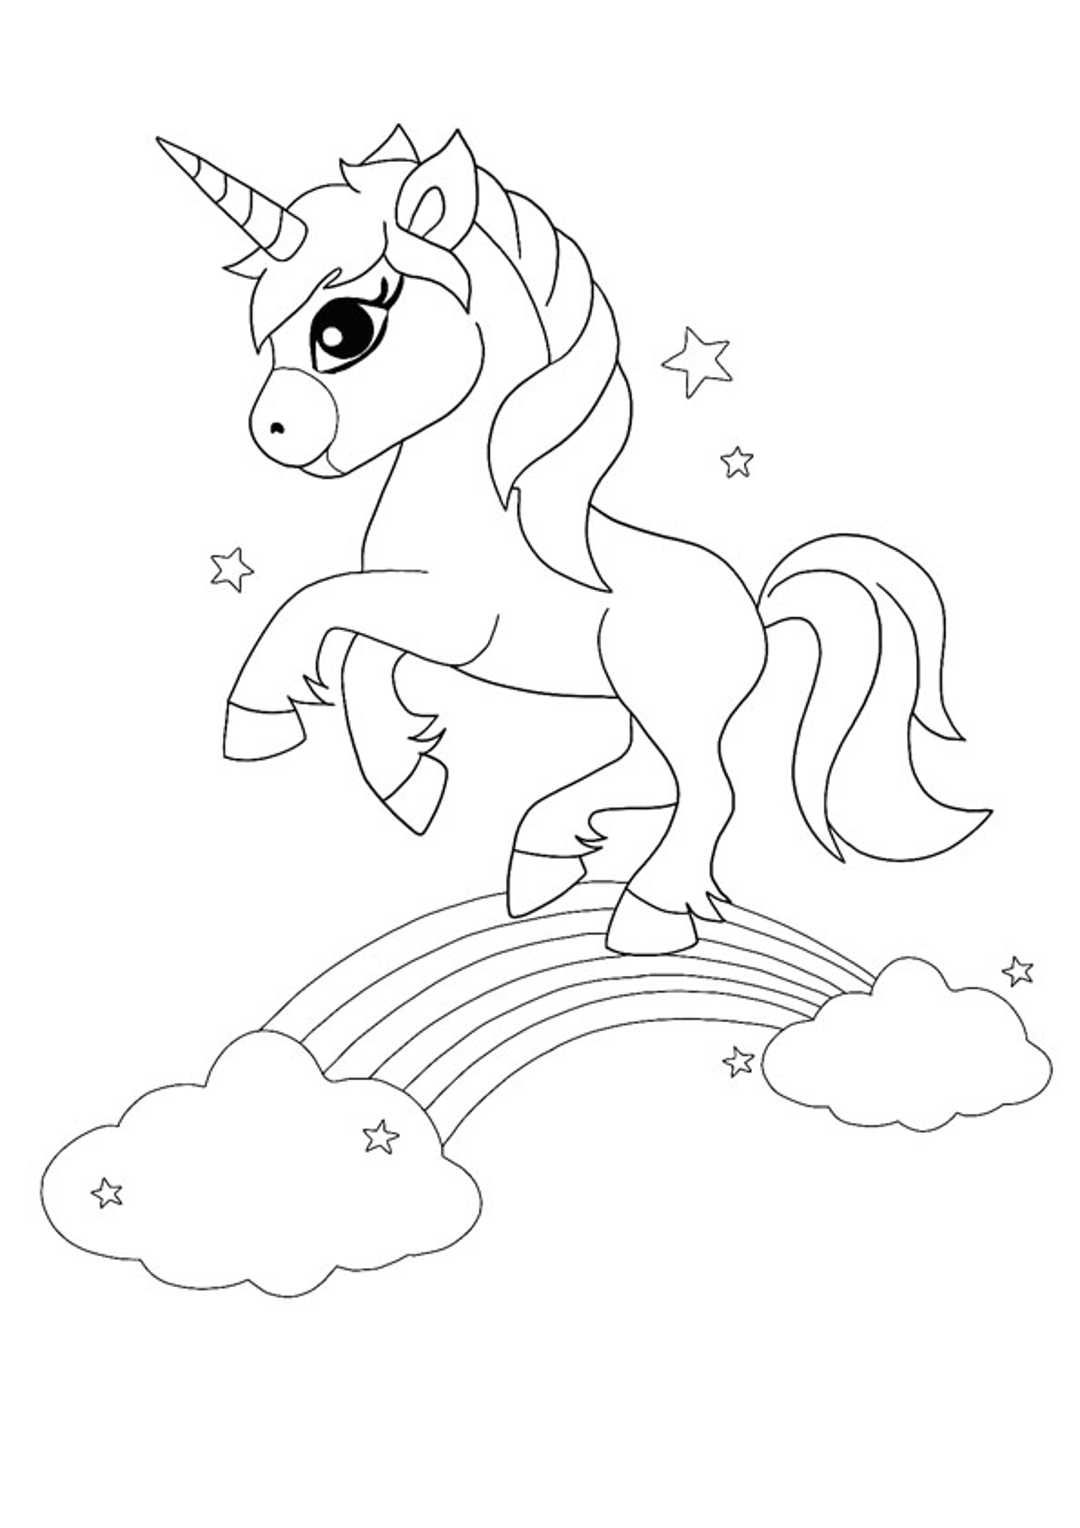 Unicorn Rainbow Coloring Pages Unicorn Coloring Pages Free Printable Coloring Sheets Dog Coloring Page